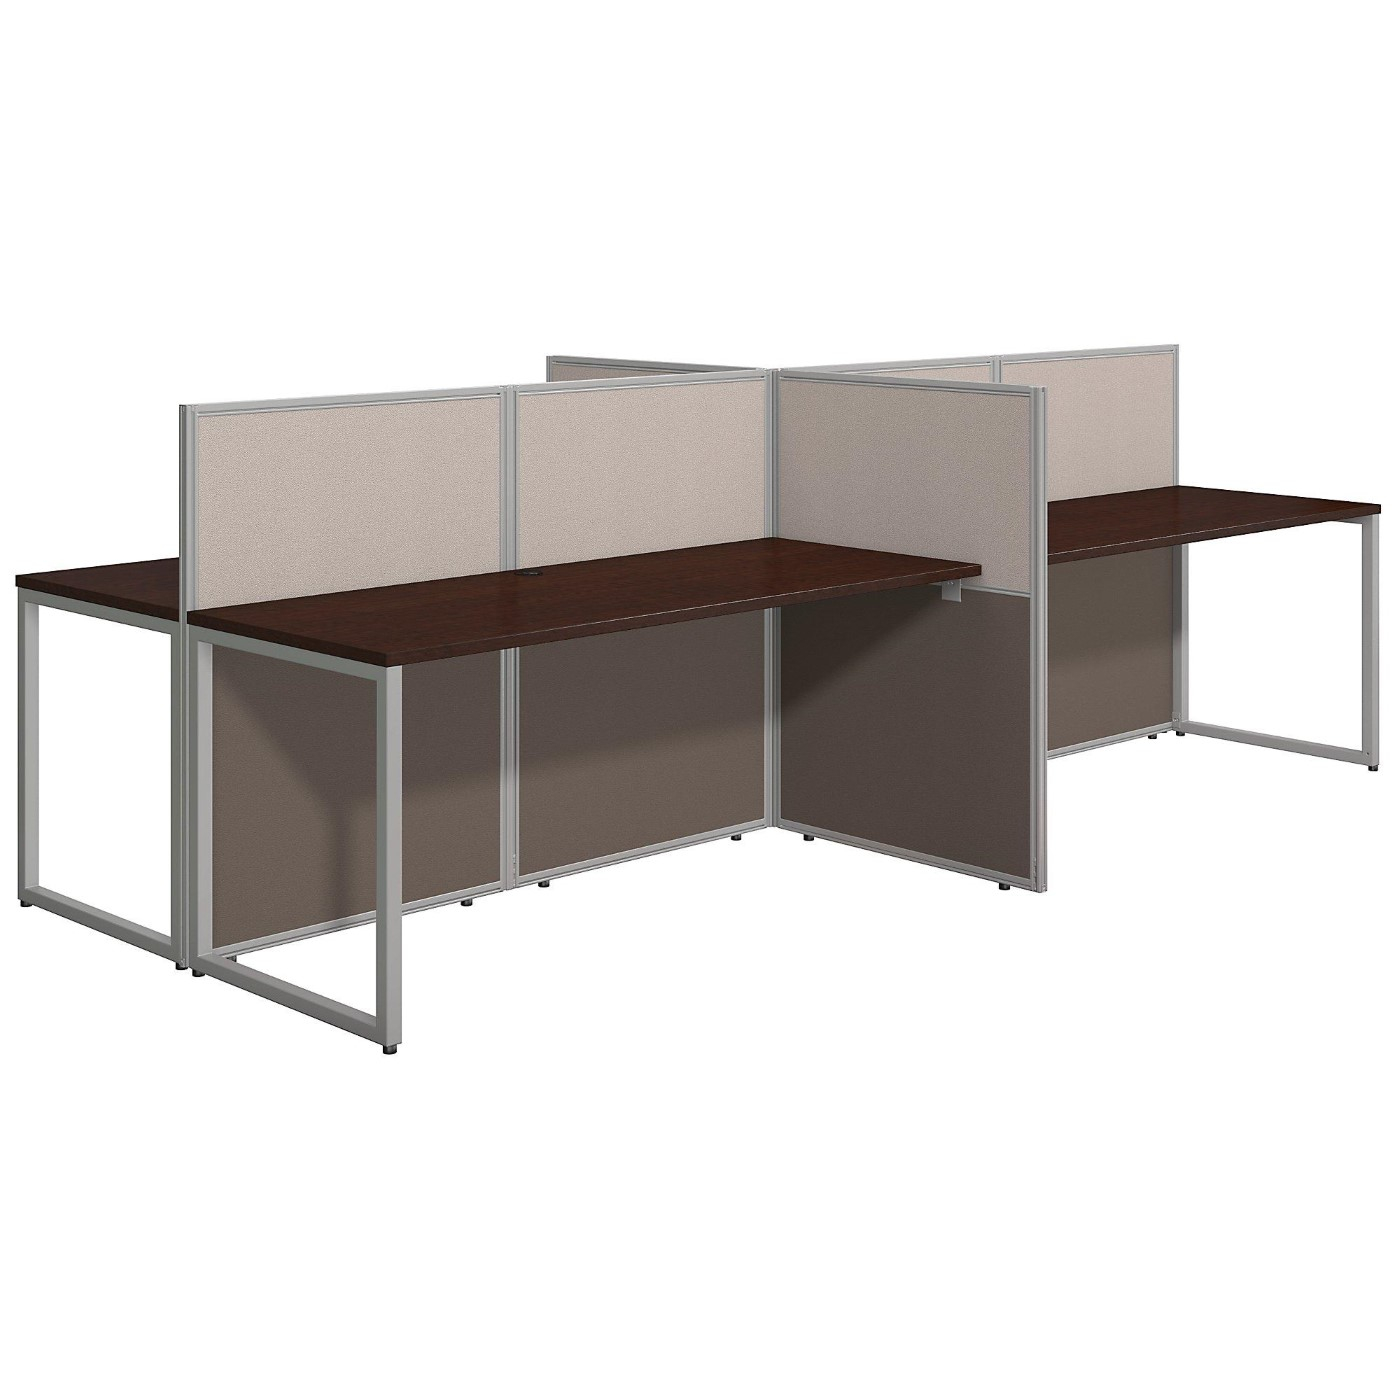 BUSH BUSINESS FURNITURE EASY OFFICE 60W 4 PERSON STRAIGHT DESK OPEN OFFICE. FREE SHIPPING.